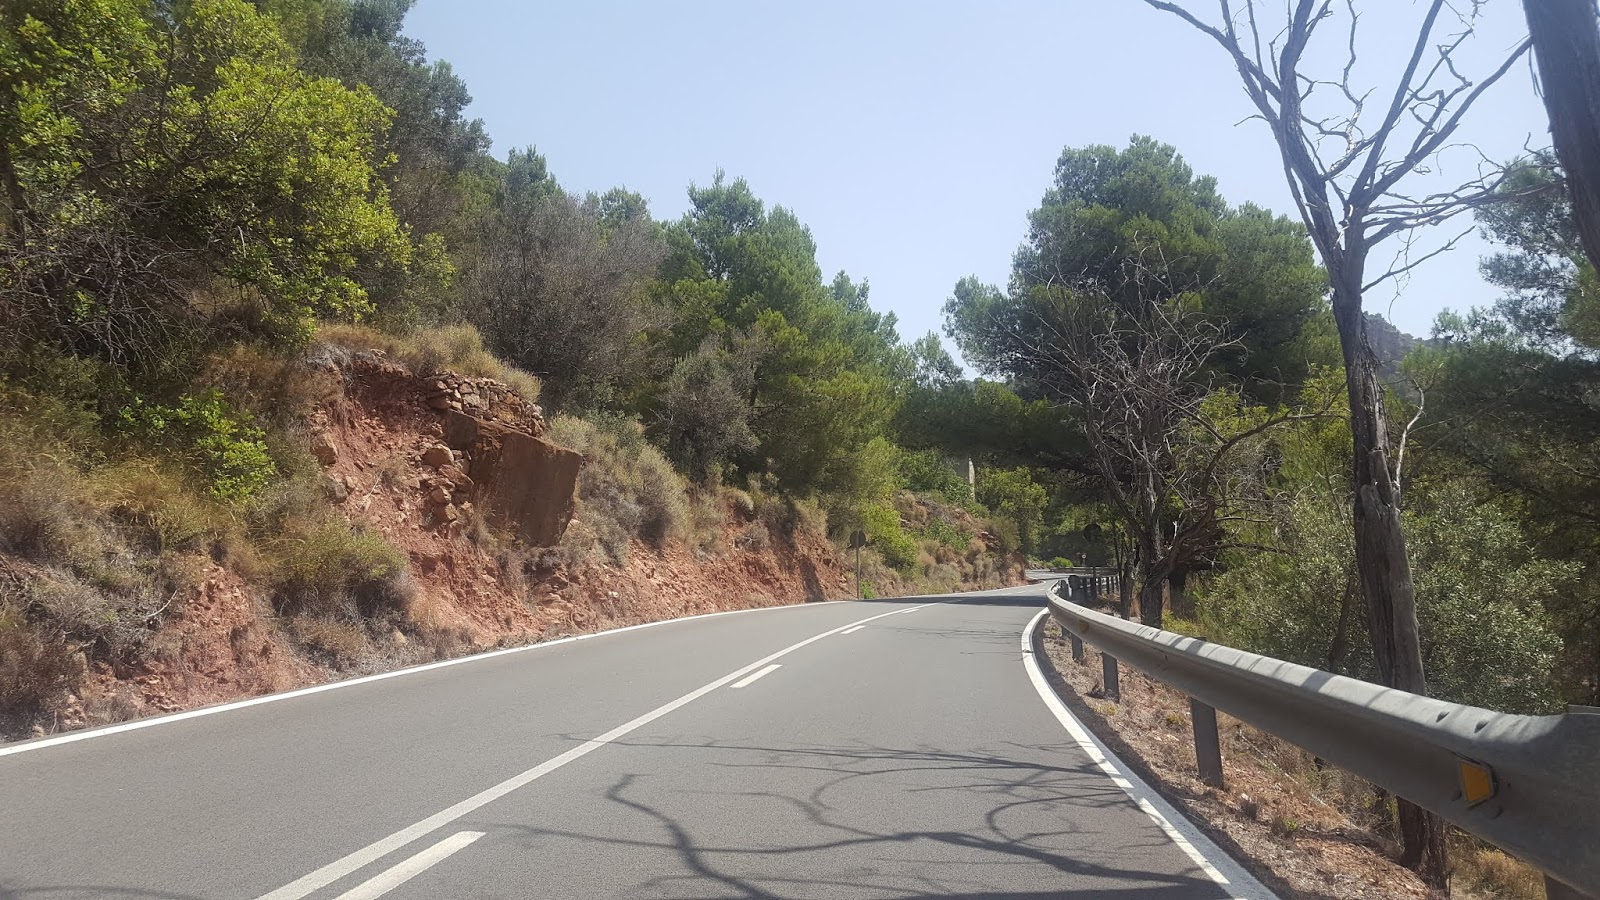 Road near the summit of l'Oronet, Valencia, Spain